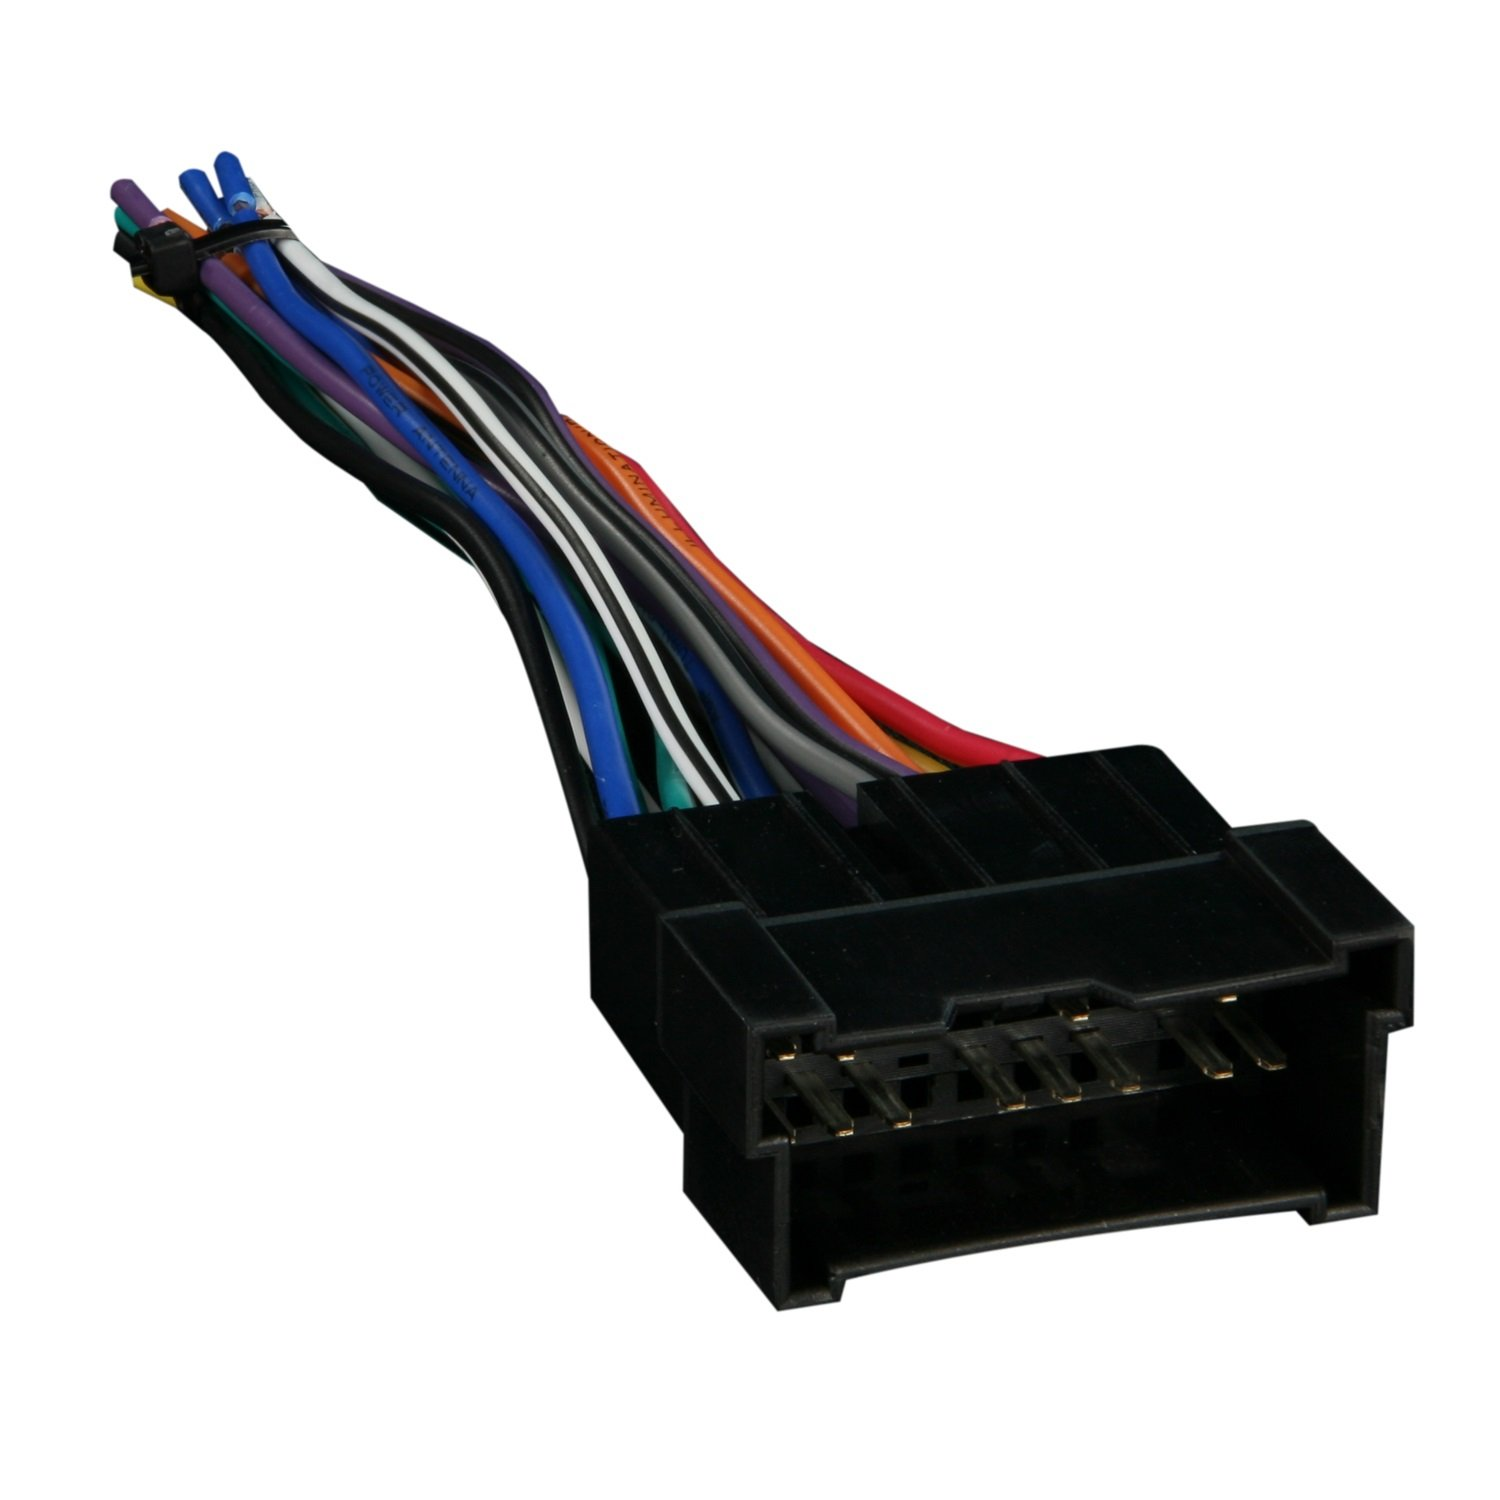 617yeBmOquL._SL1500_ amazon com metra 70 7301 radio wiring harness for hyundai kia 99 wire harness doesn't fit at edmiracle.co